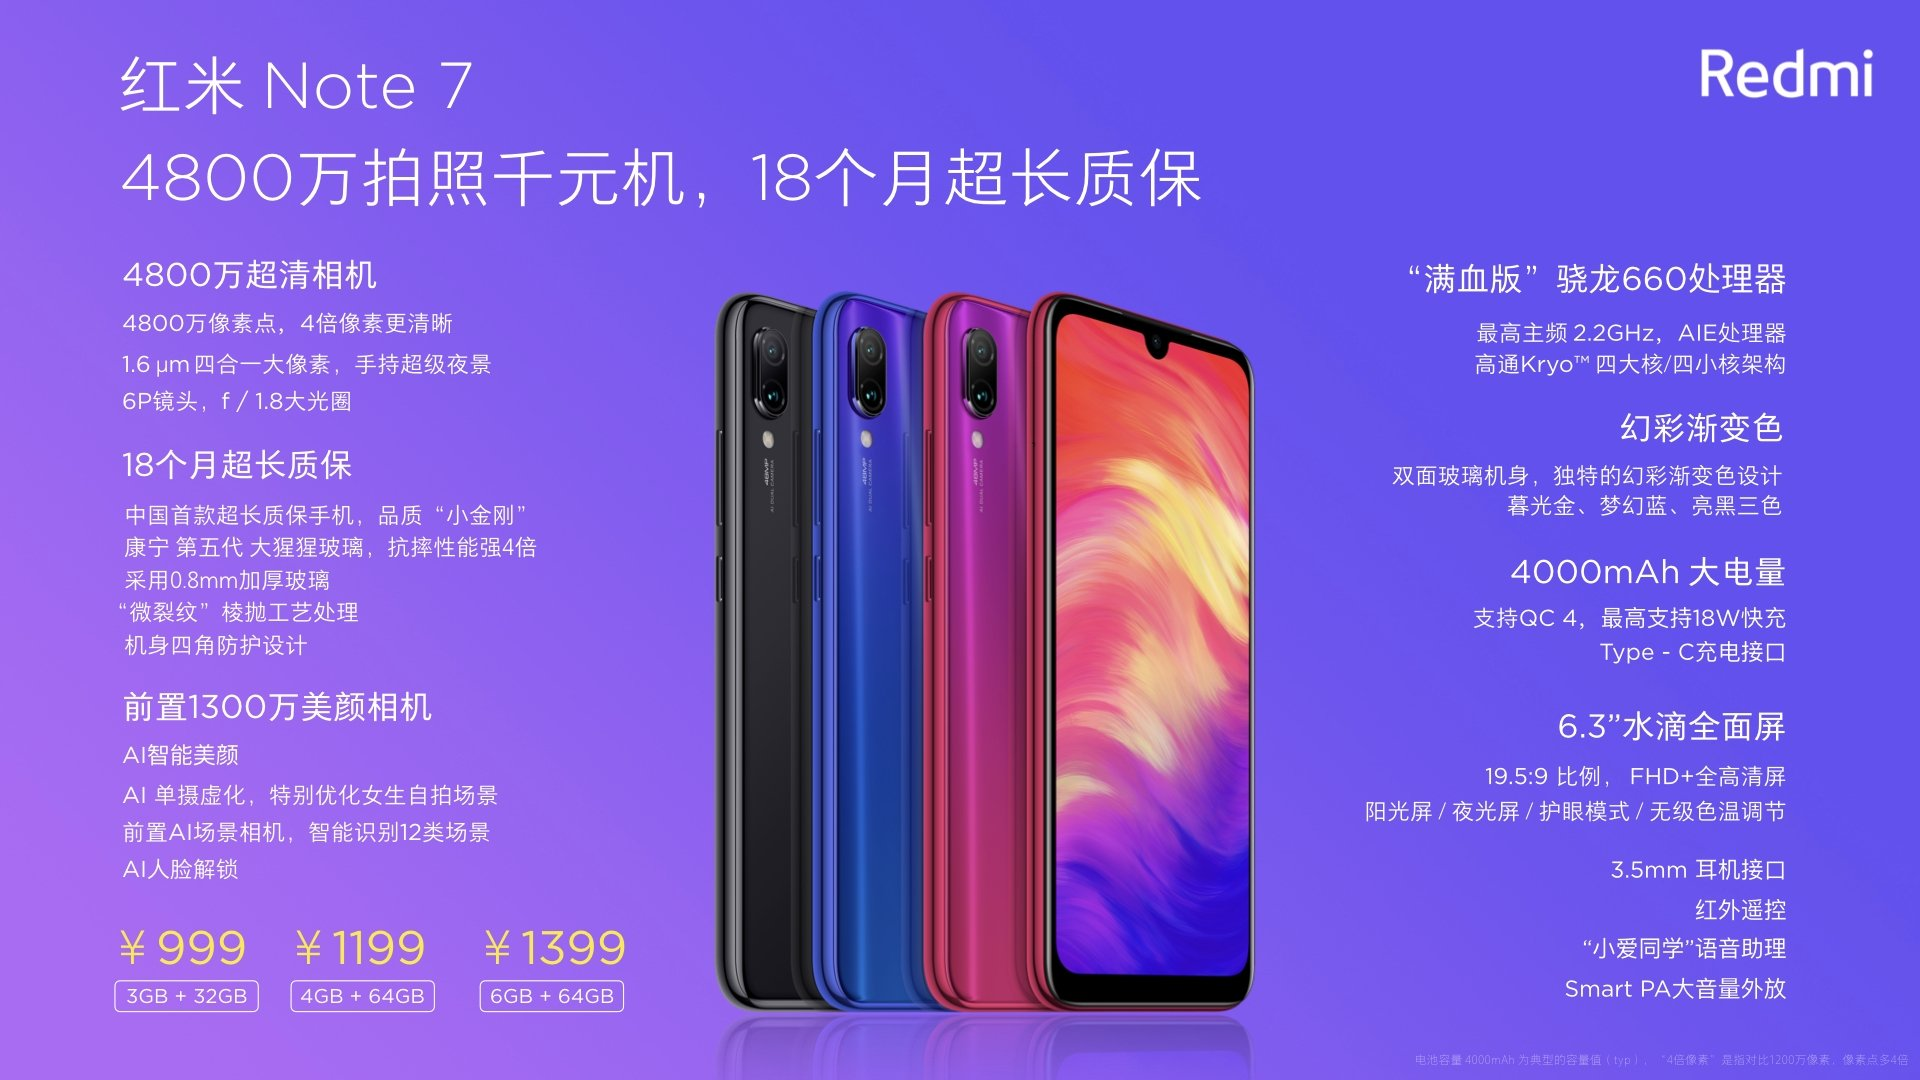 Redmi Note 7 Specifications and Price